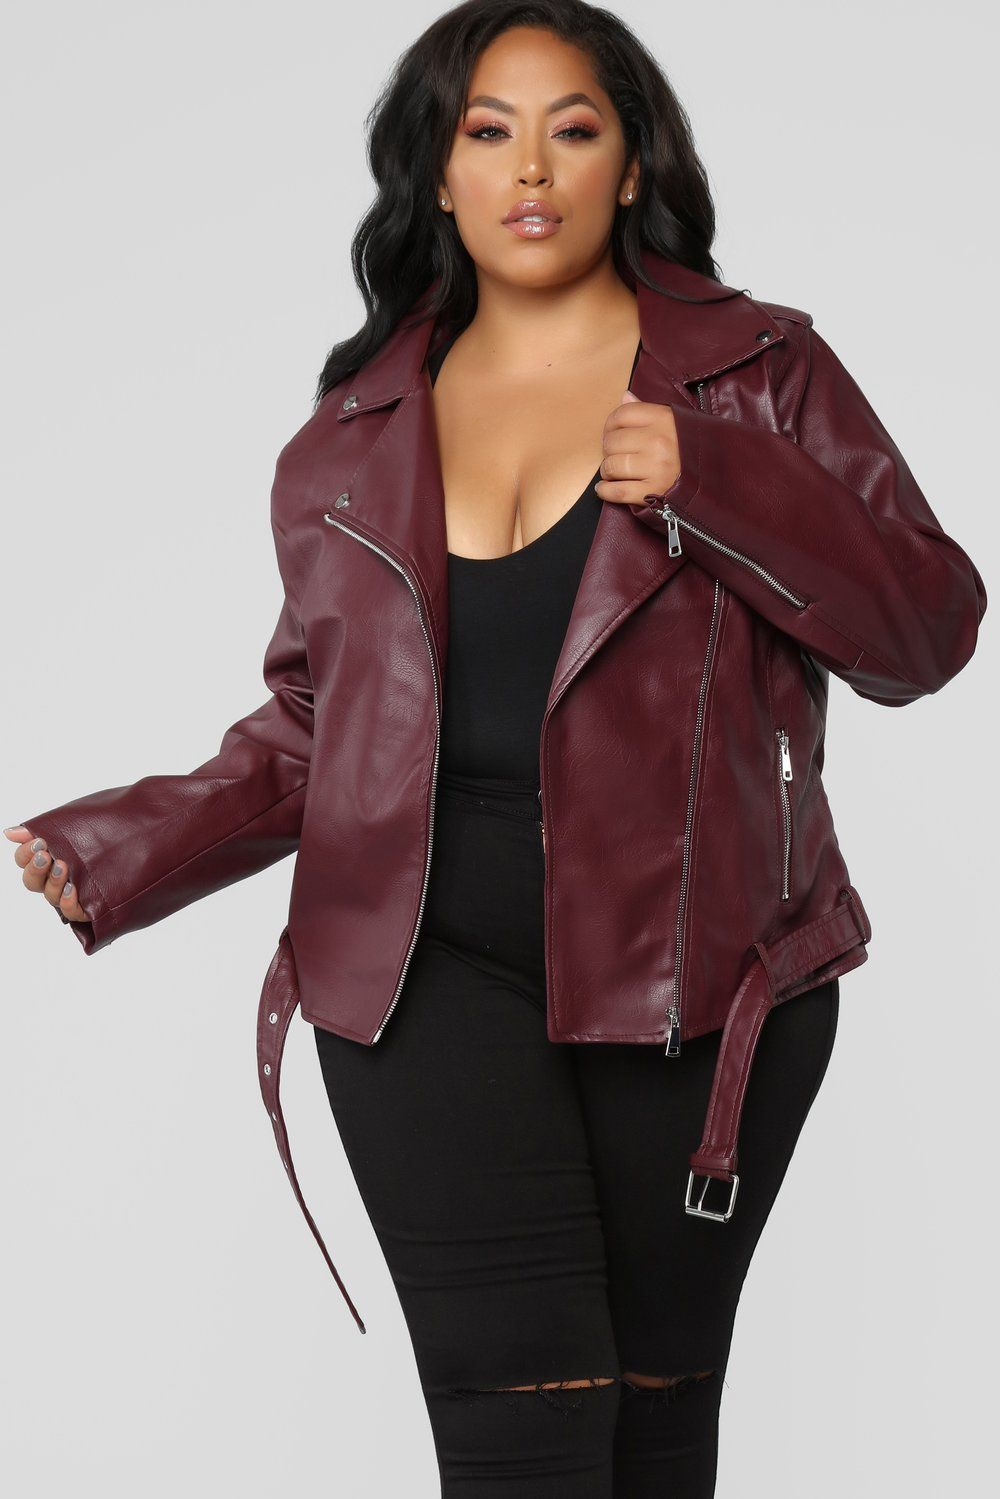 autumn shoes how to get search for original Araxie Vegan Leather Jacket - Wine | The Roommate in 2019 ...